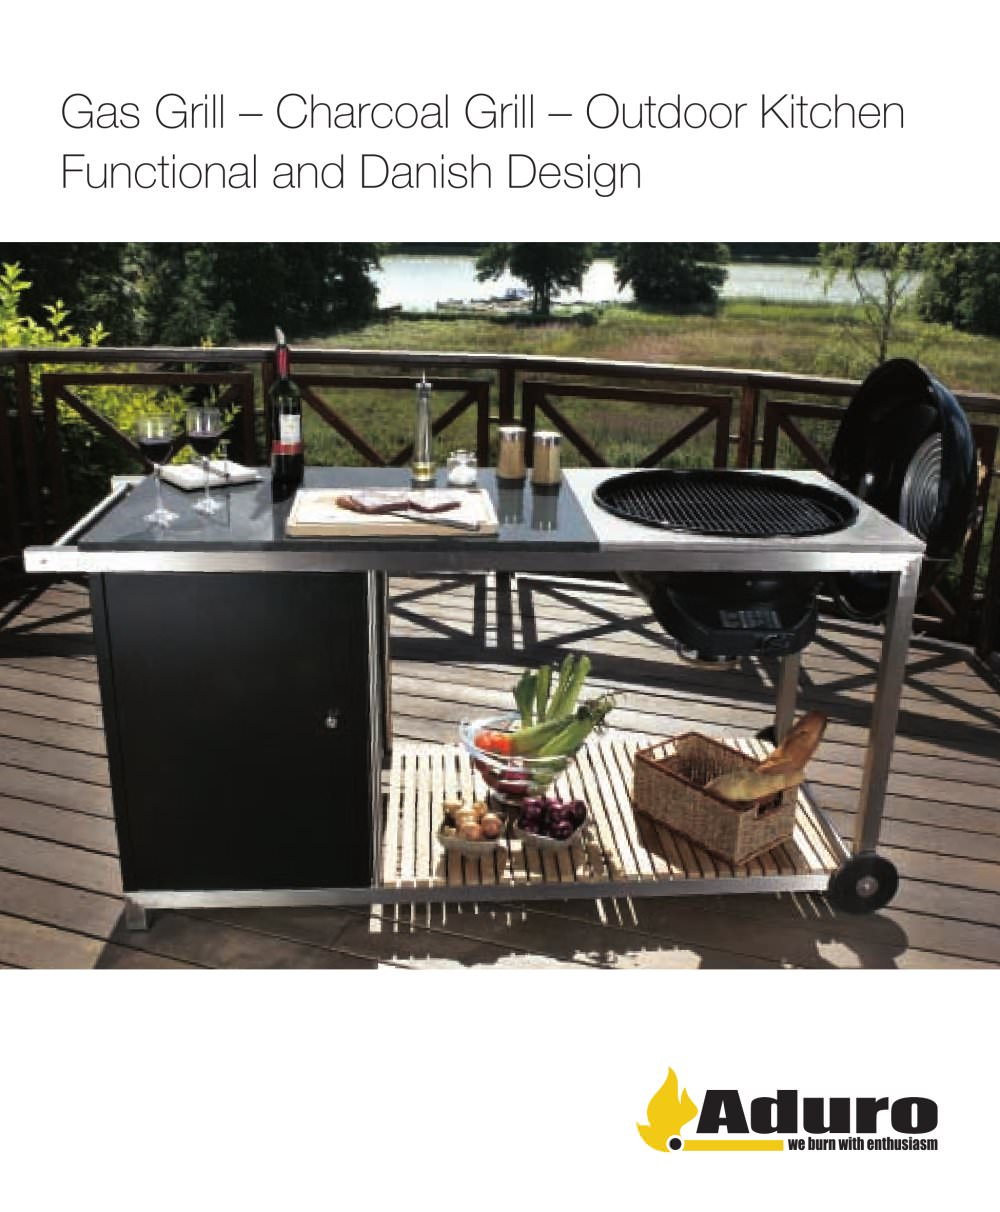 Outdoor Kitchen Gas Grill Gas Grill Aduro A S Pdf Catalogues Documentation Brochures